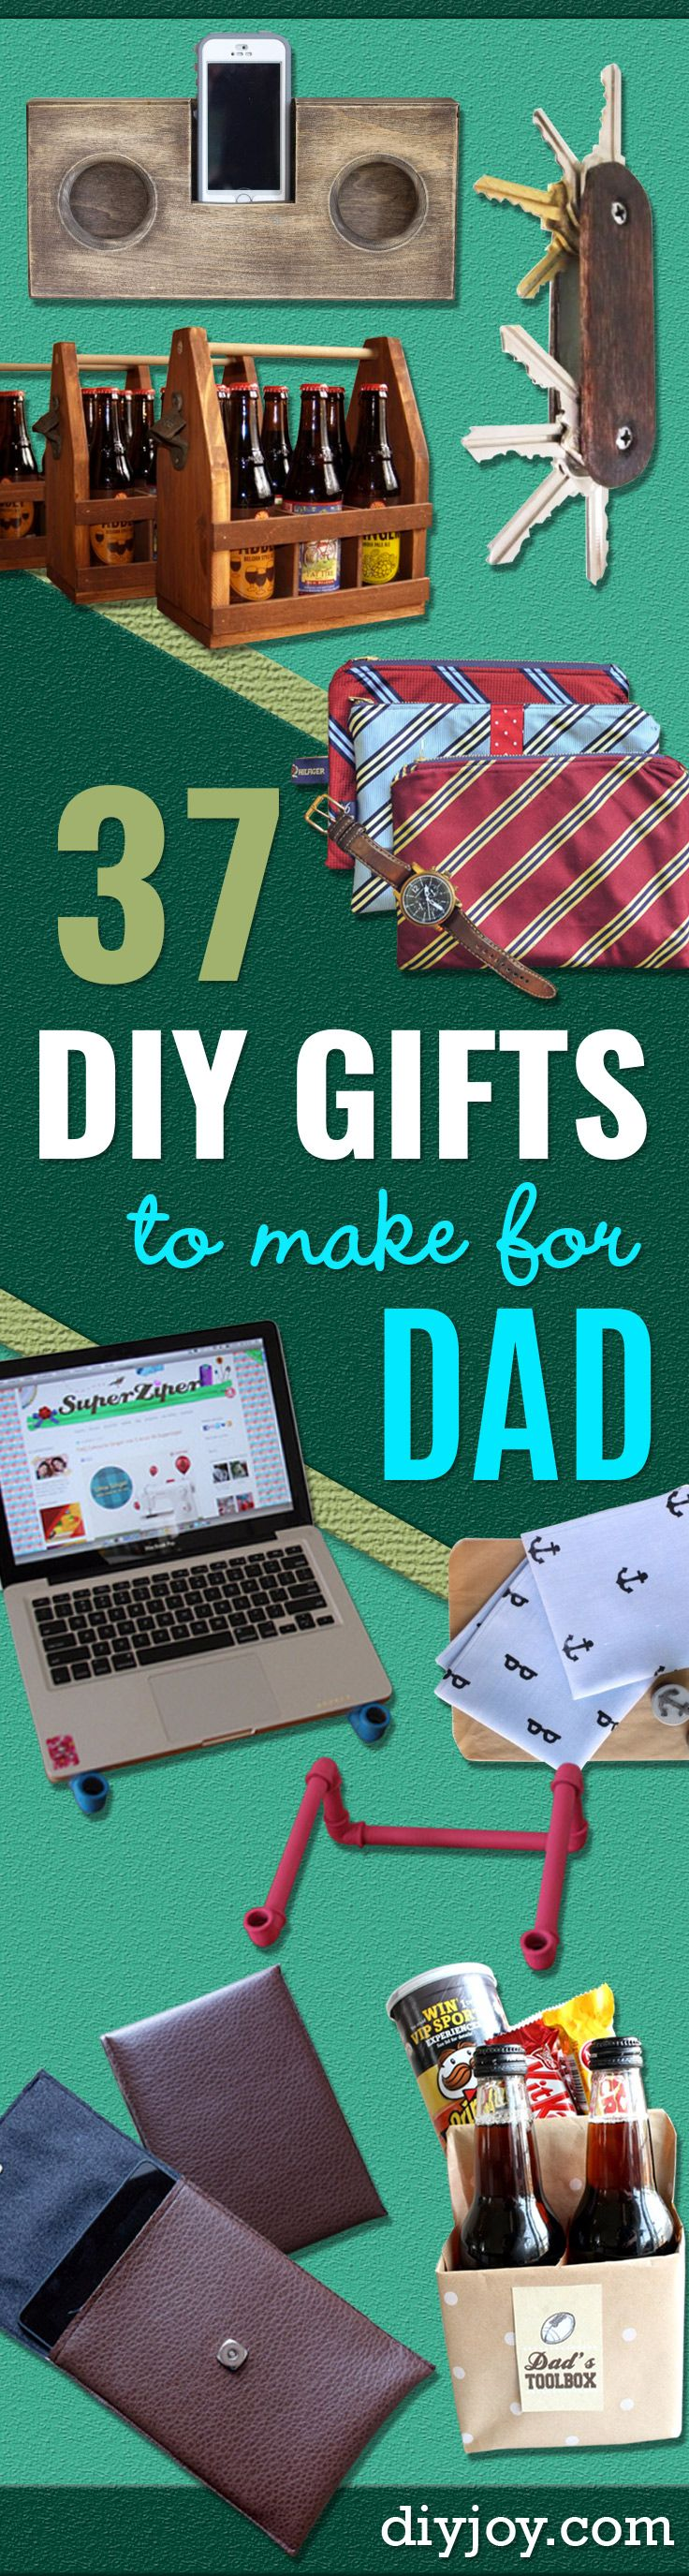 1000 ideas about gifts for dad on pinterest employee for Gifts u can make